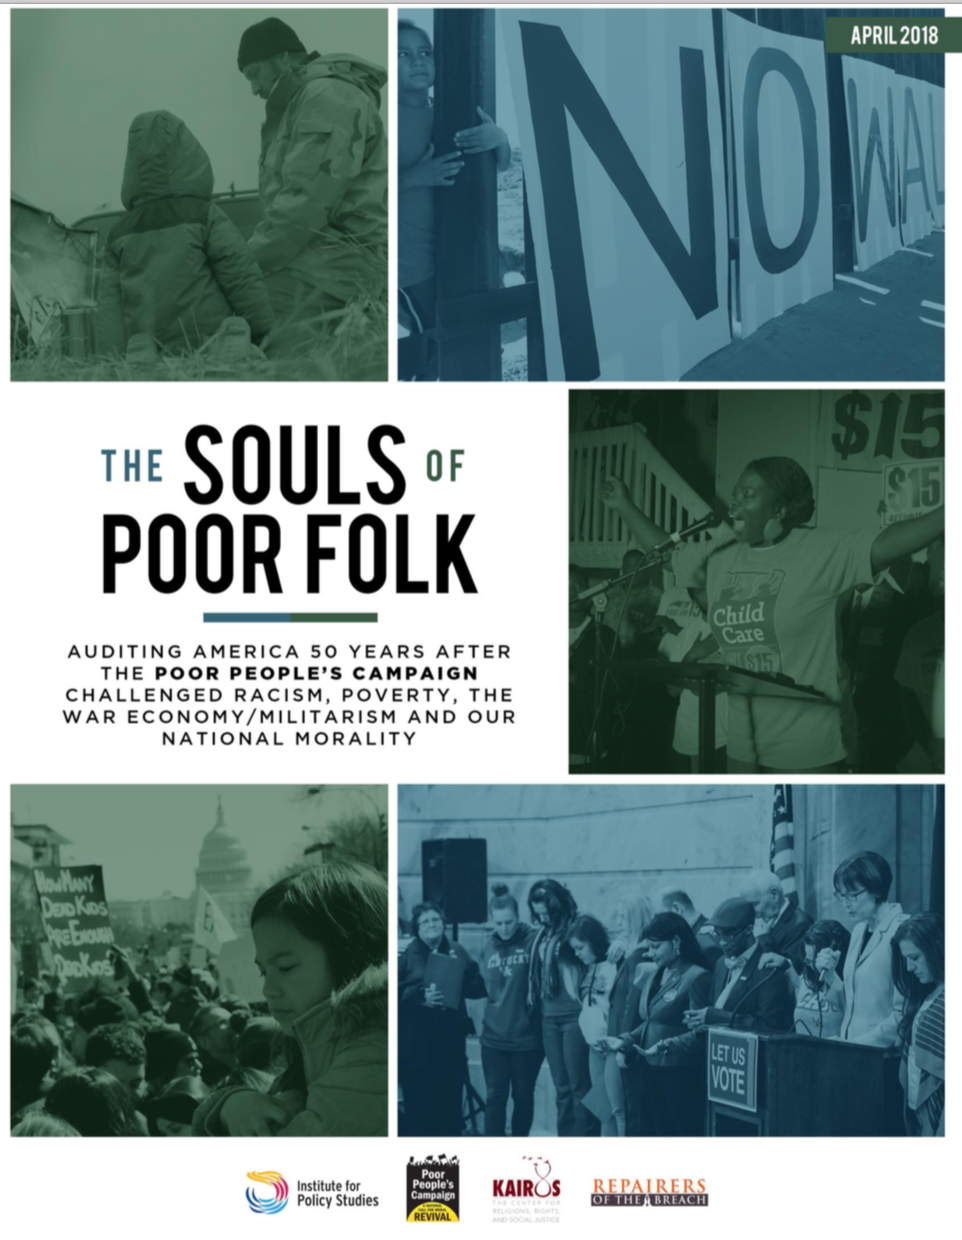 Moral Audit - The Souls of Poor Folk: Auditing America 50 Years After the Poor People's Campaign Challenged Racism, Poverty, the War Economy/Militarism and Our National Morality traces the 50 years since 1968, when Rev. Dr. Martin Luther King, Jr., and thousands of Americans, alarmed at their government's blindness to human need, launched the Poor People's Campaign.